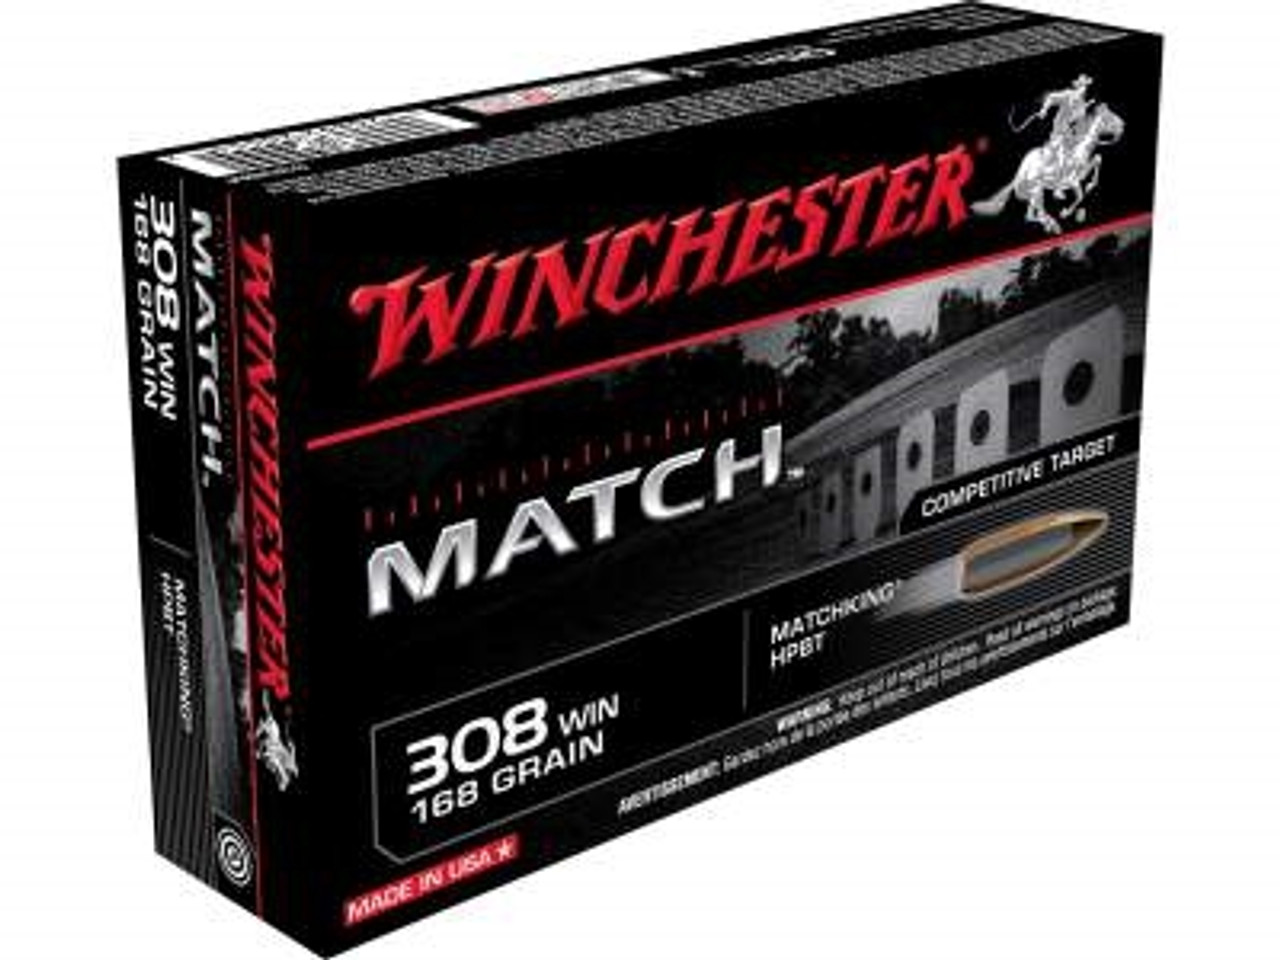 Winchester 308 Win Ammunition Supreme Match S308M 168 Grain Hollow Point  Boat Tail 20 rounds